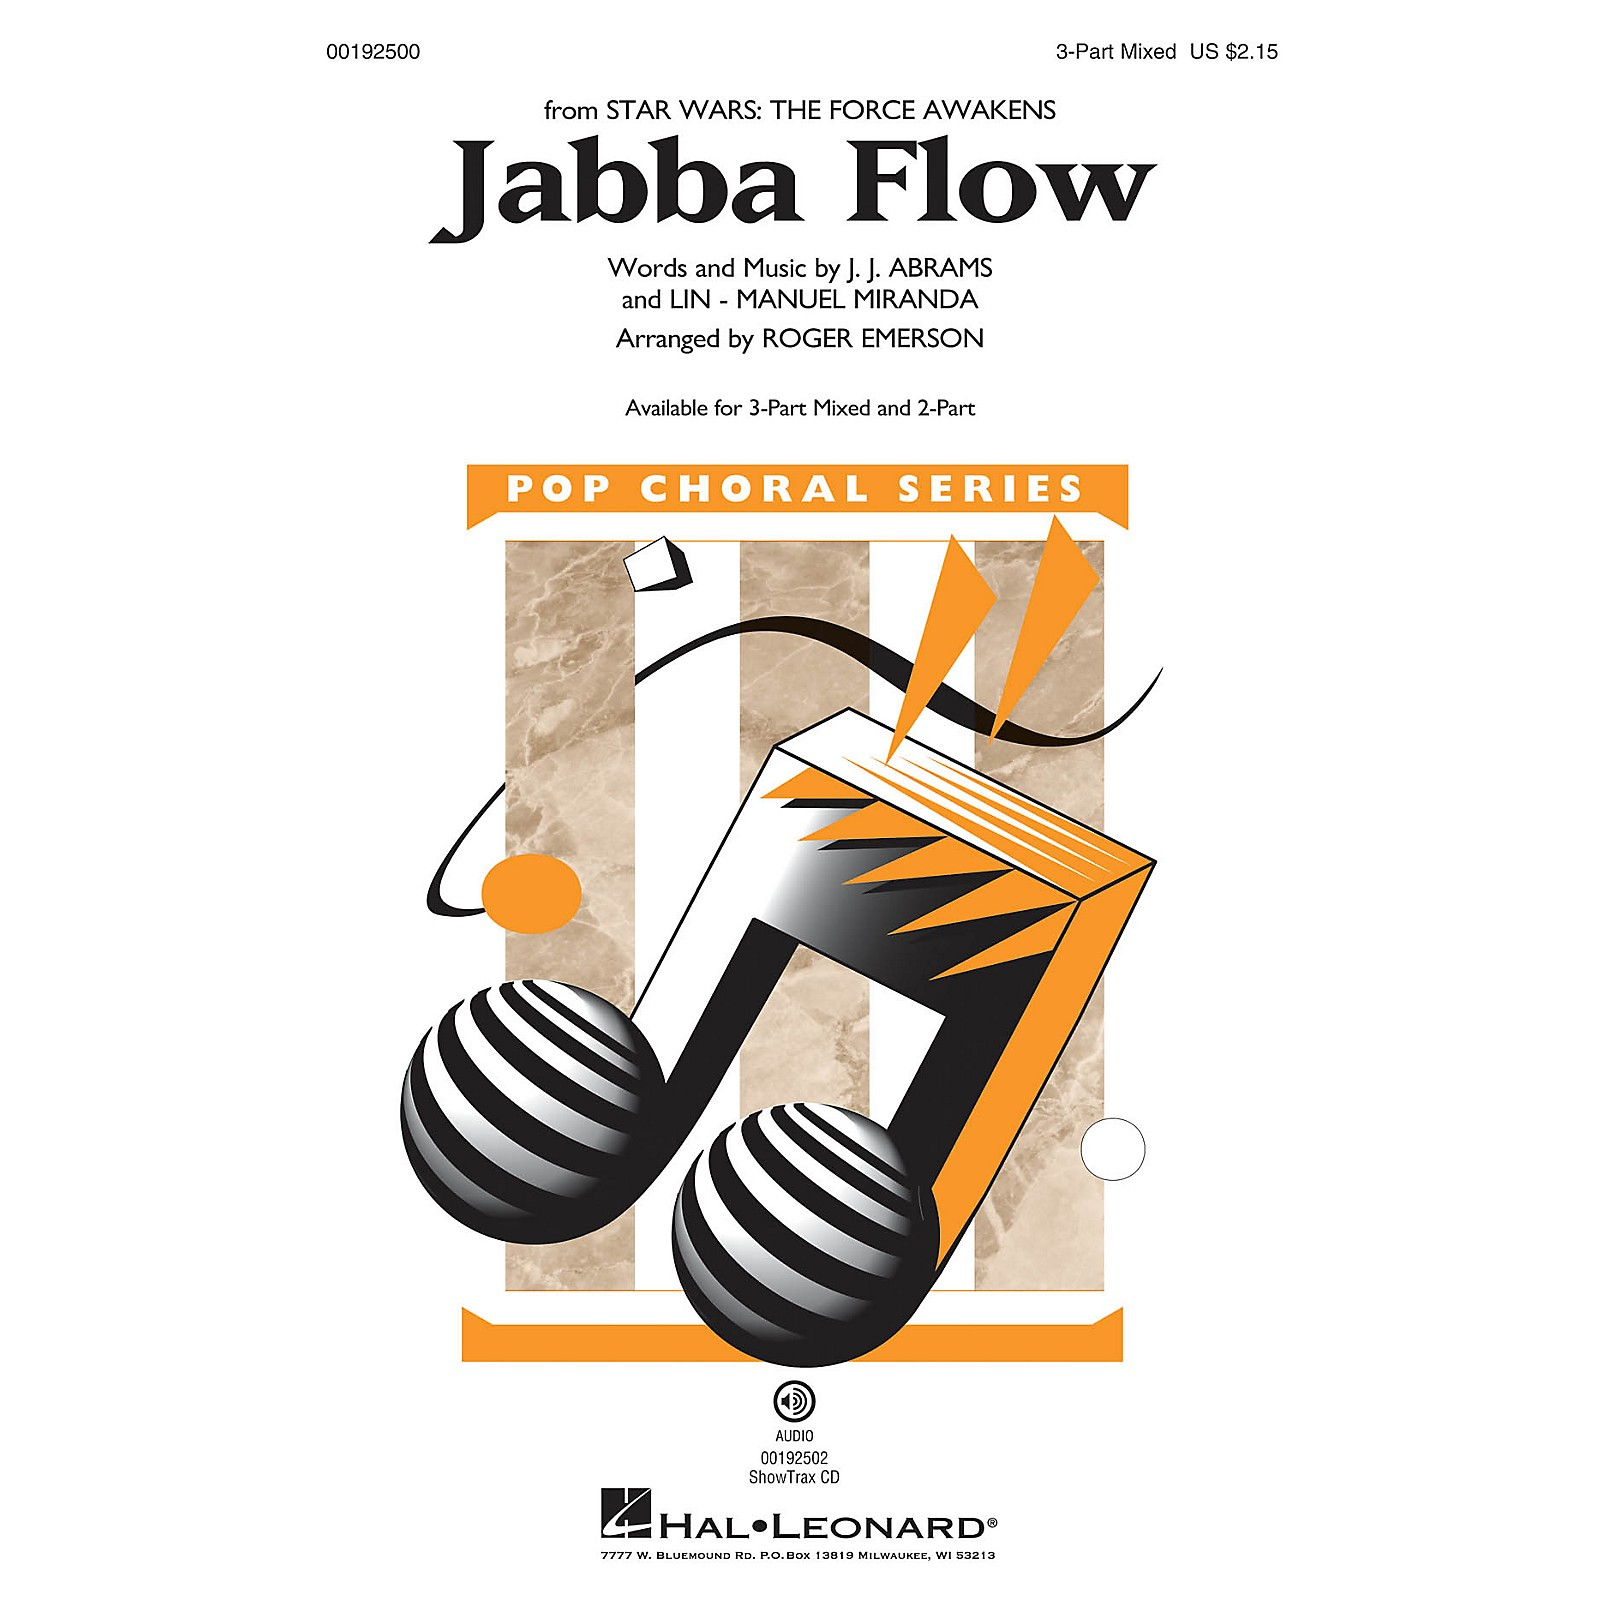 Hal Leonard Jabba Flow (from Star Wars: The Force Awakens) 2-Part Arranged by Roger Emerson